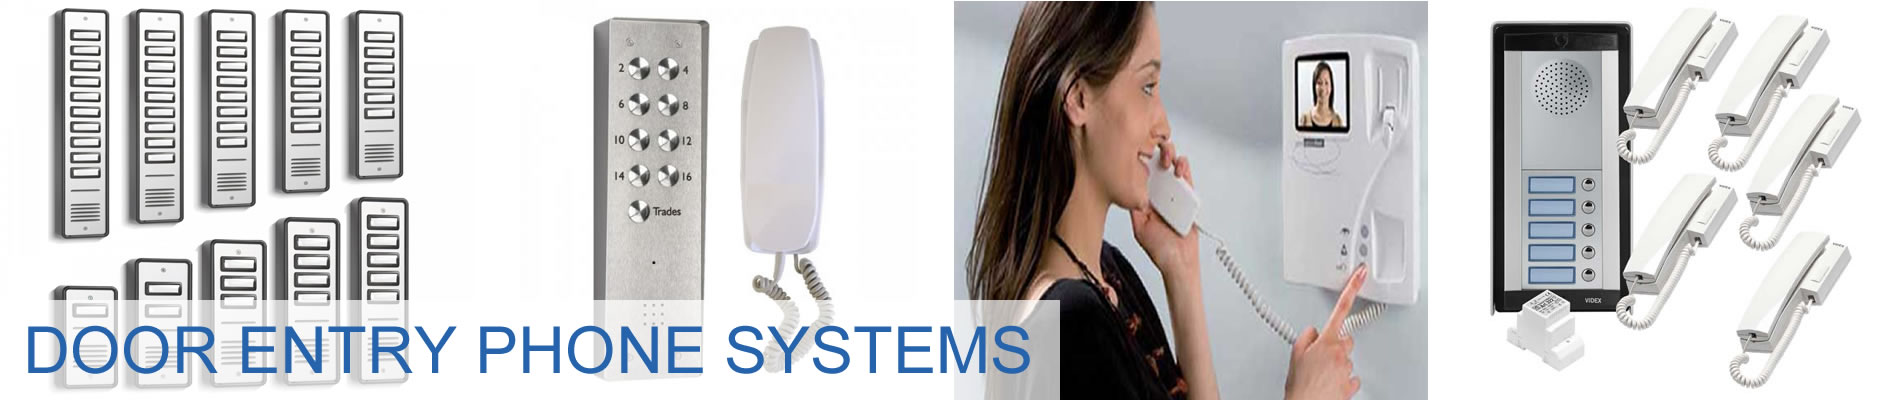 Door Entry Phone Systems & Intercoms